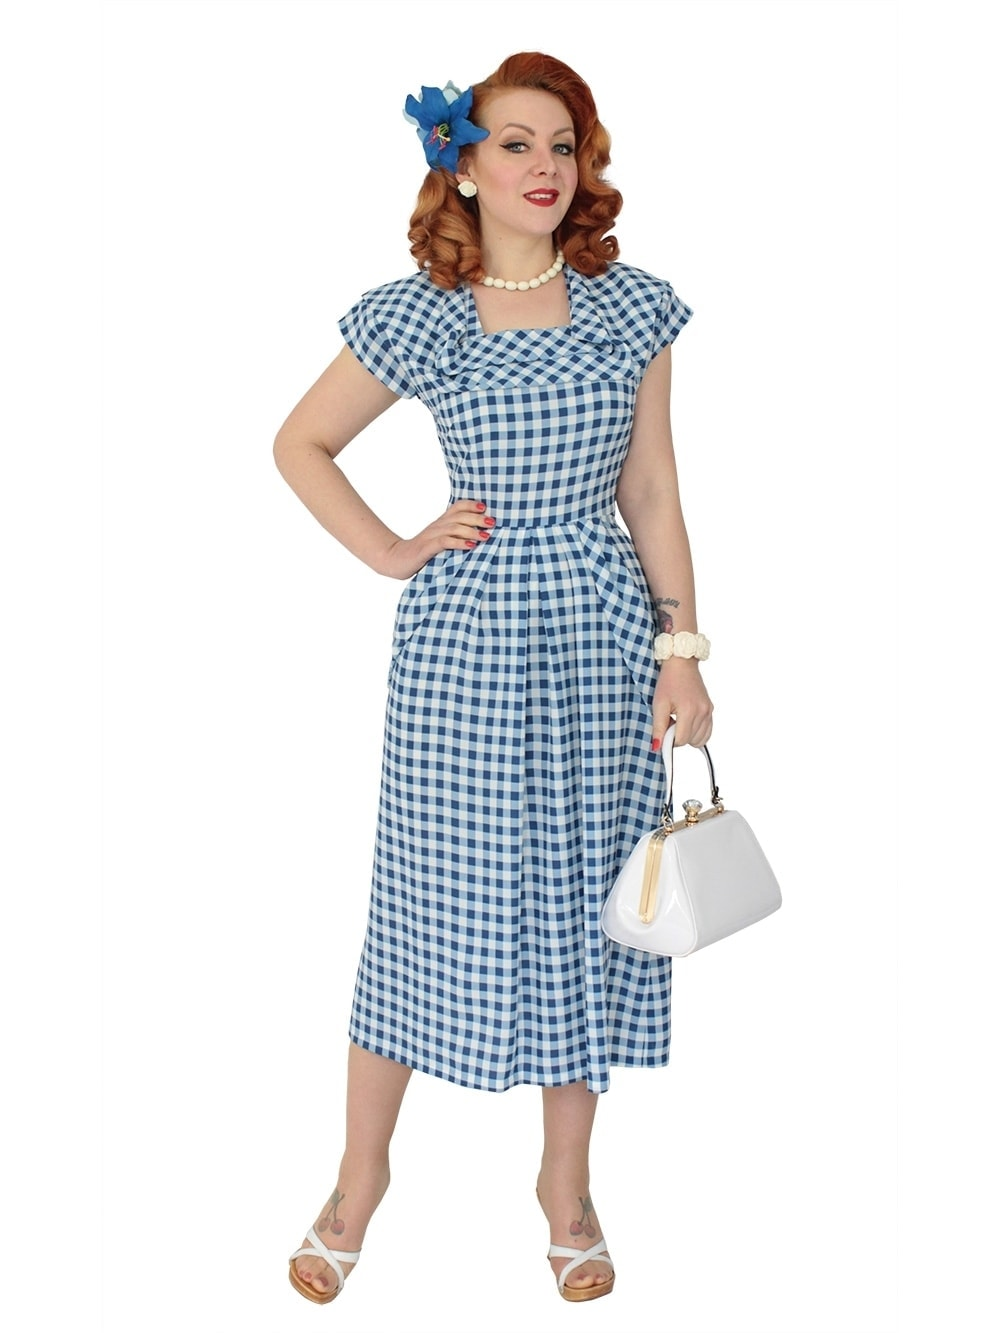 1940s Fashions In Red White Blue With Images: 1940s Dress Lana Gingham Blue From Vivien Of Holloway